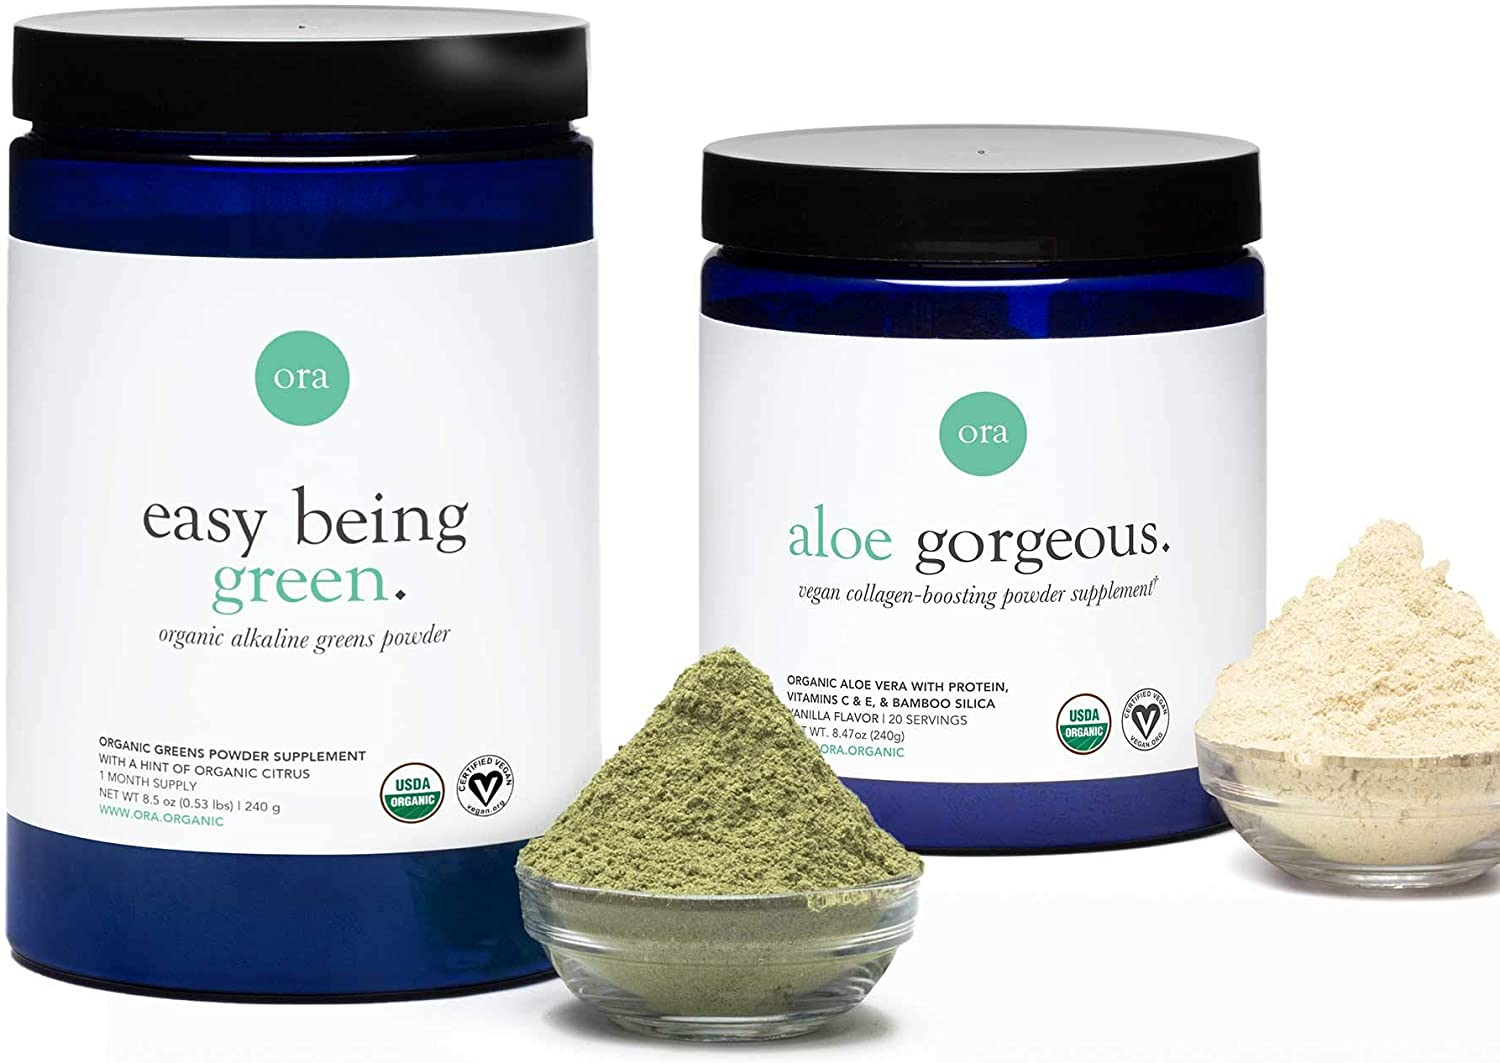 Ora Organic Greens Powder & Collagen-Boosting Powder Bundle - Provides 20+ Superfoods While Supporting Hair, Skin, Nails with All Vegan Ingredients